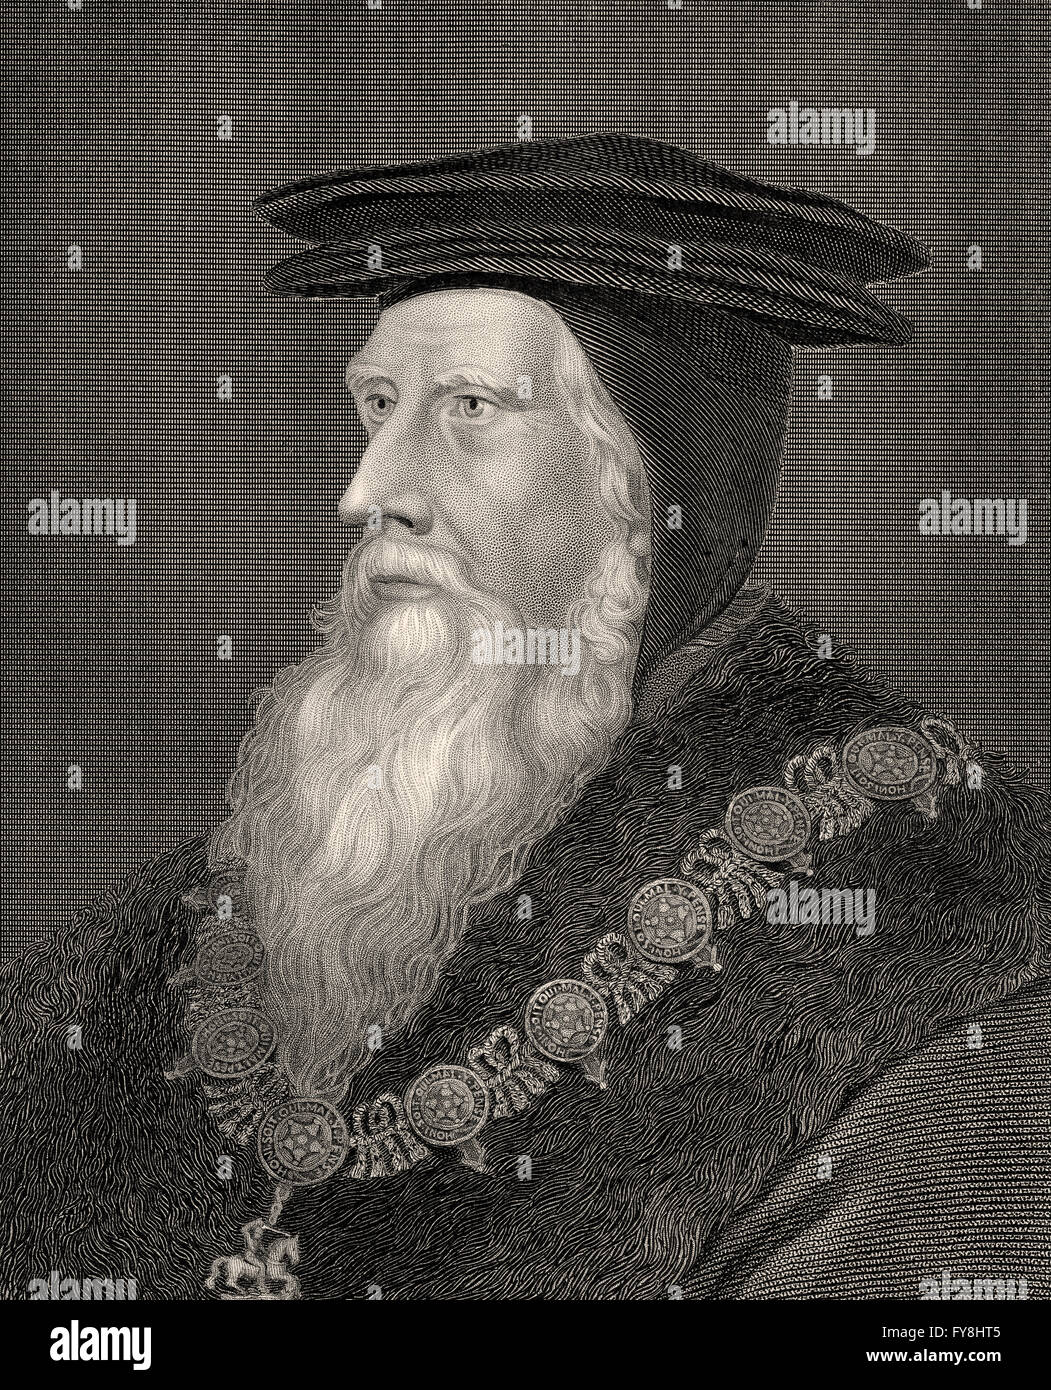 john russell 1st earl of bedfordc 1485 1554 1555 an english 1485 1554 1555 an english royal minister in the tudor era